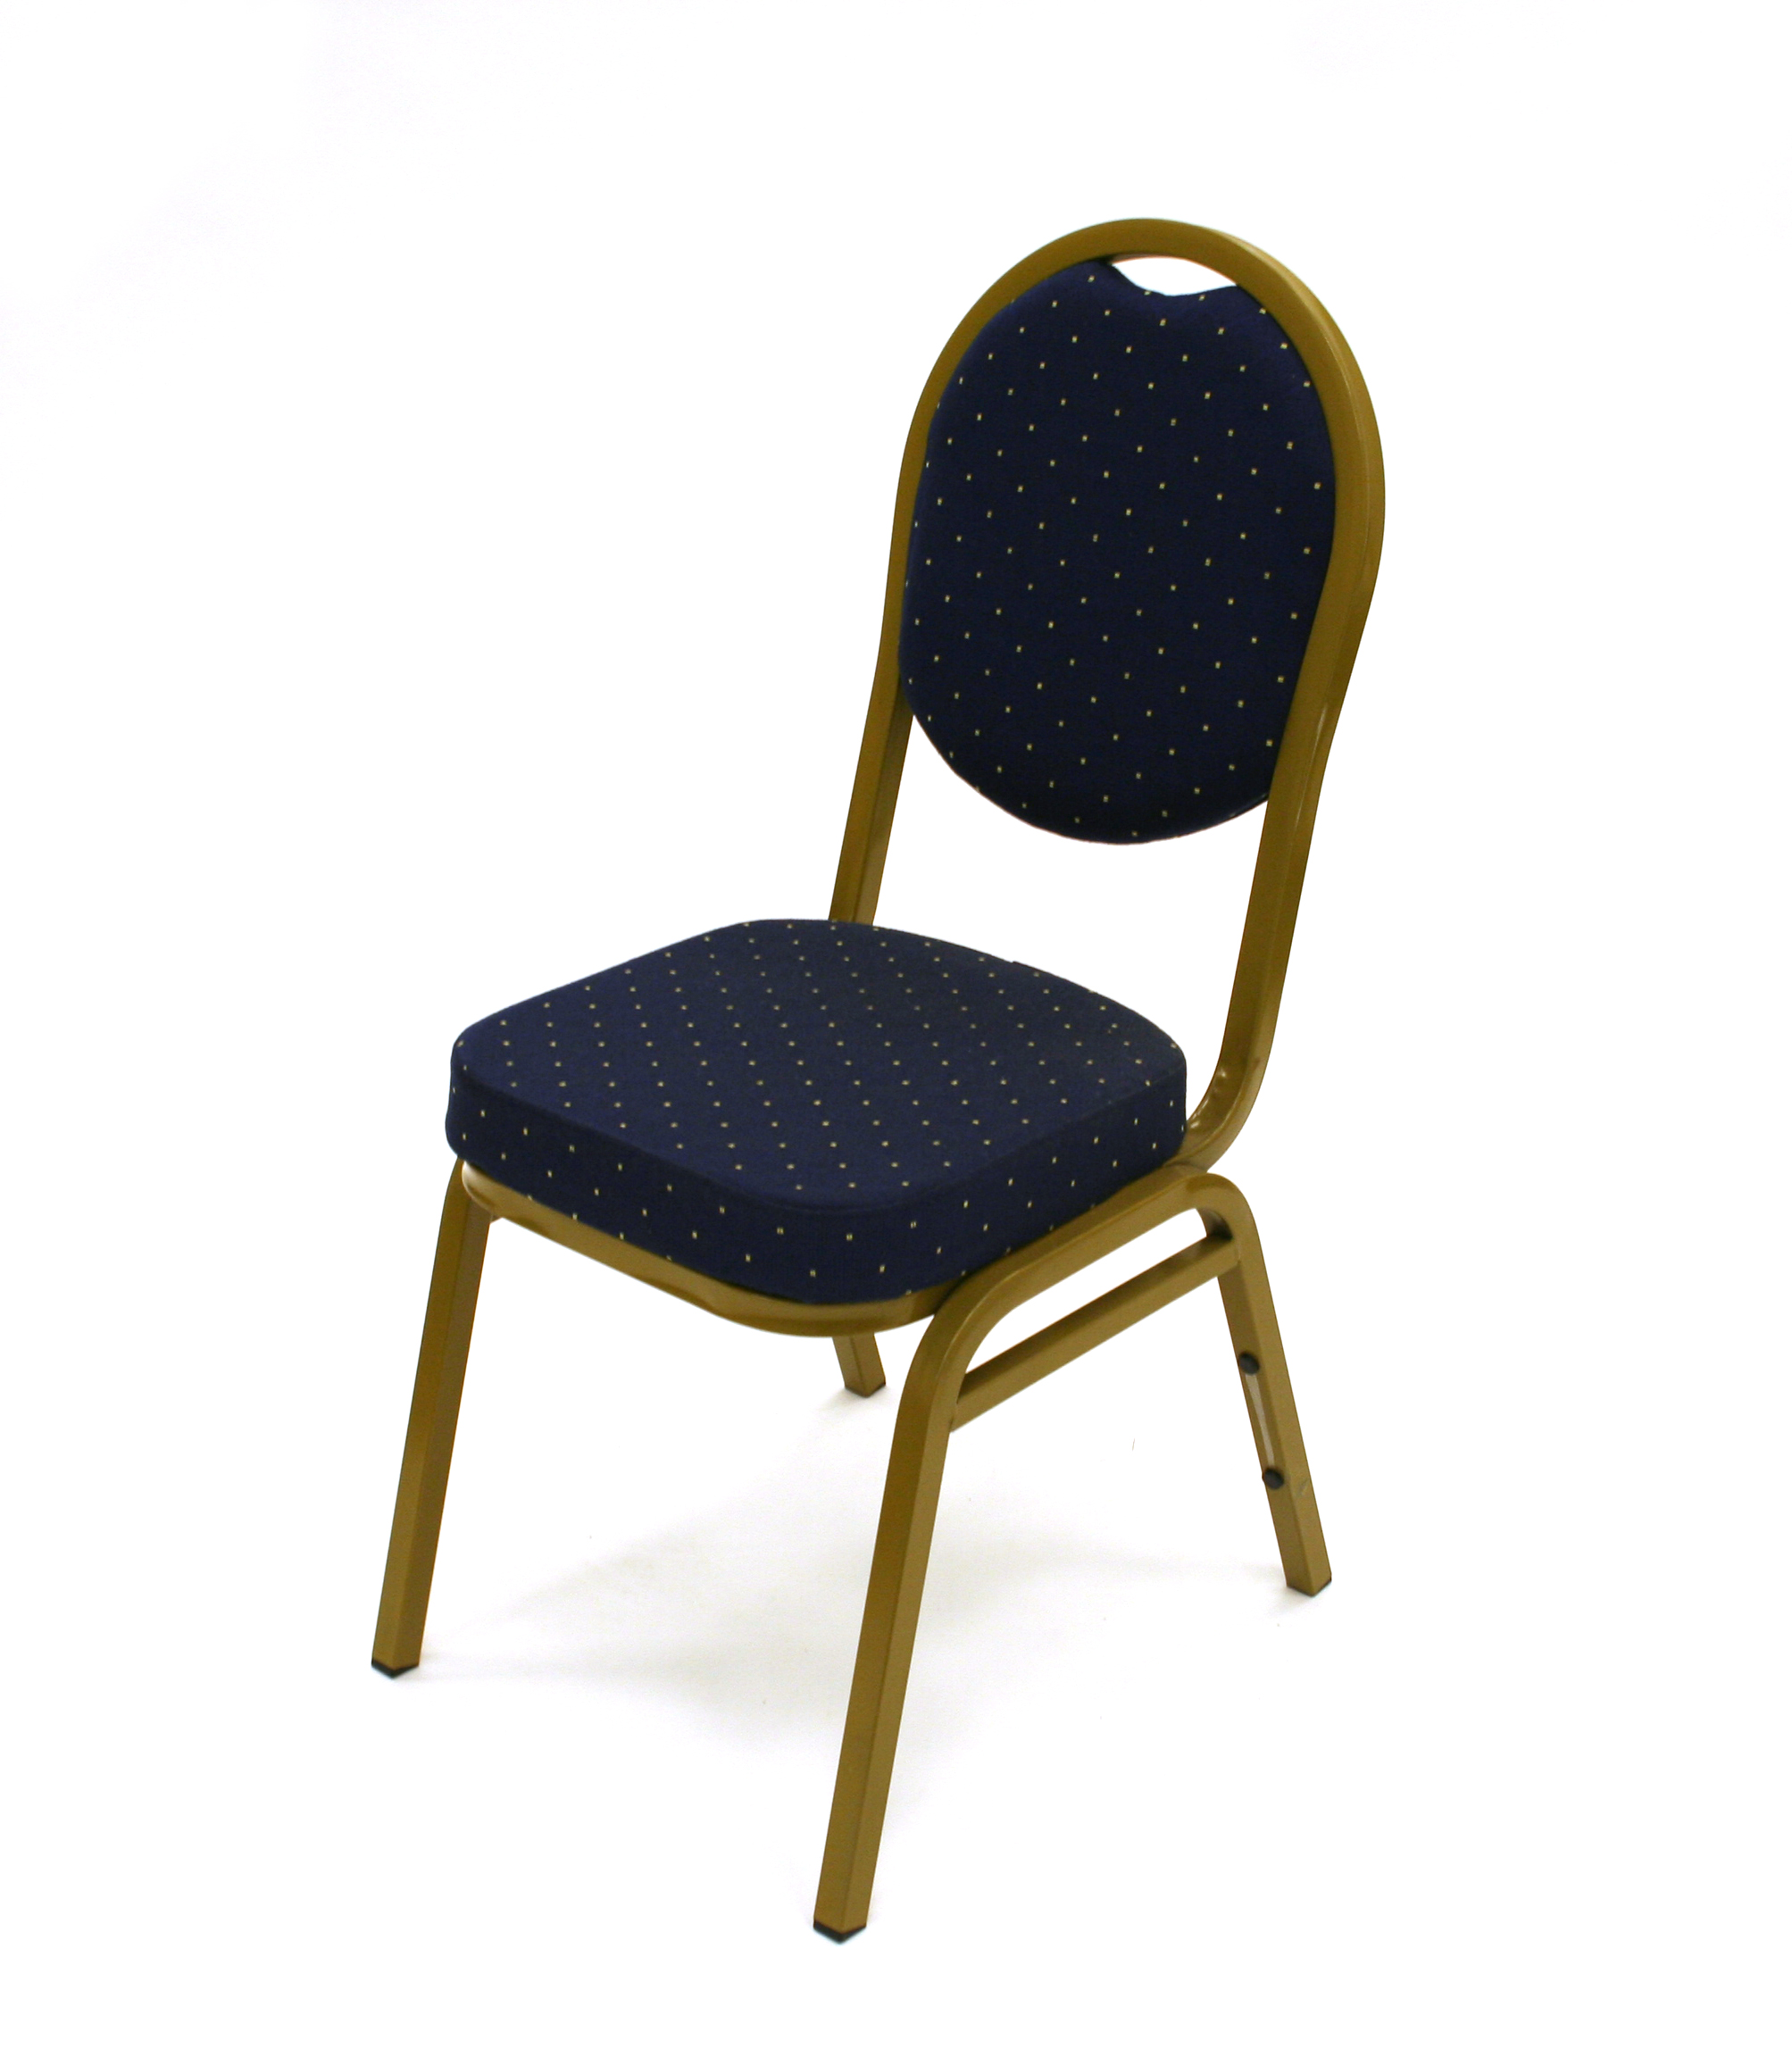 Blue gold banqueting chair hire weddings events be event hire